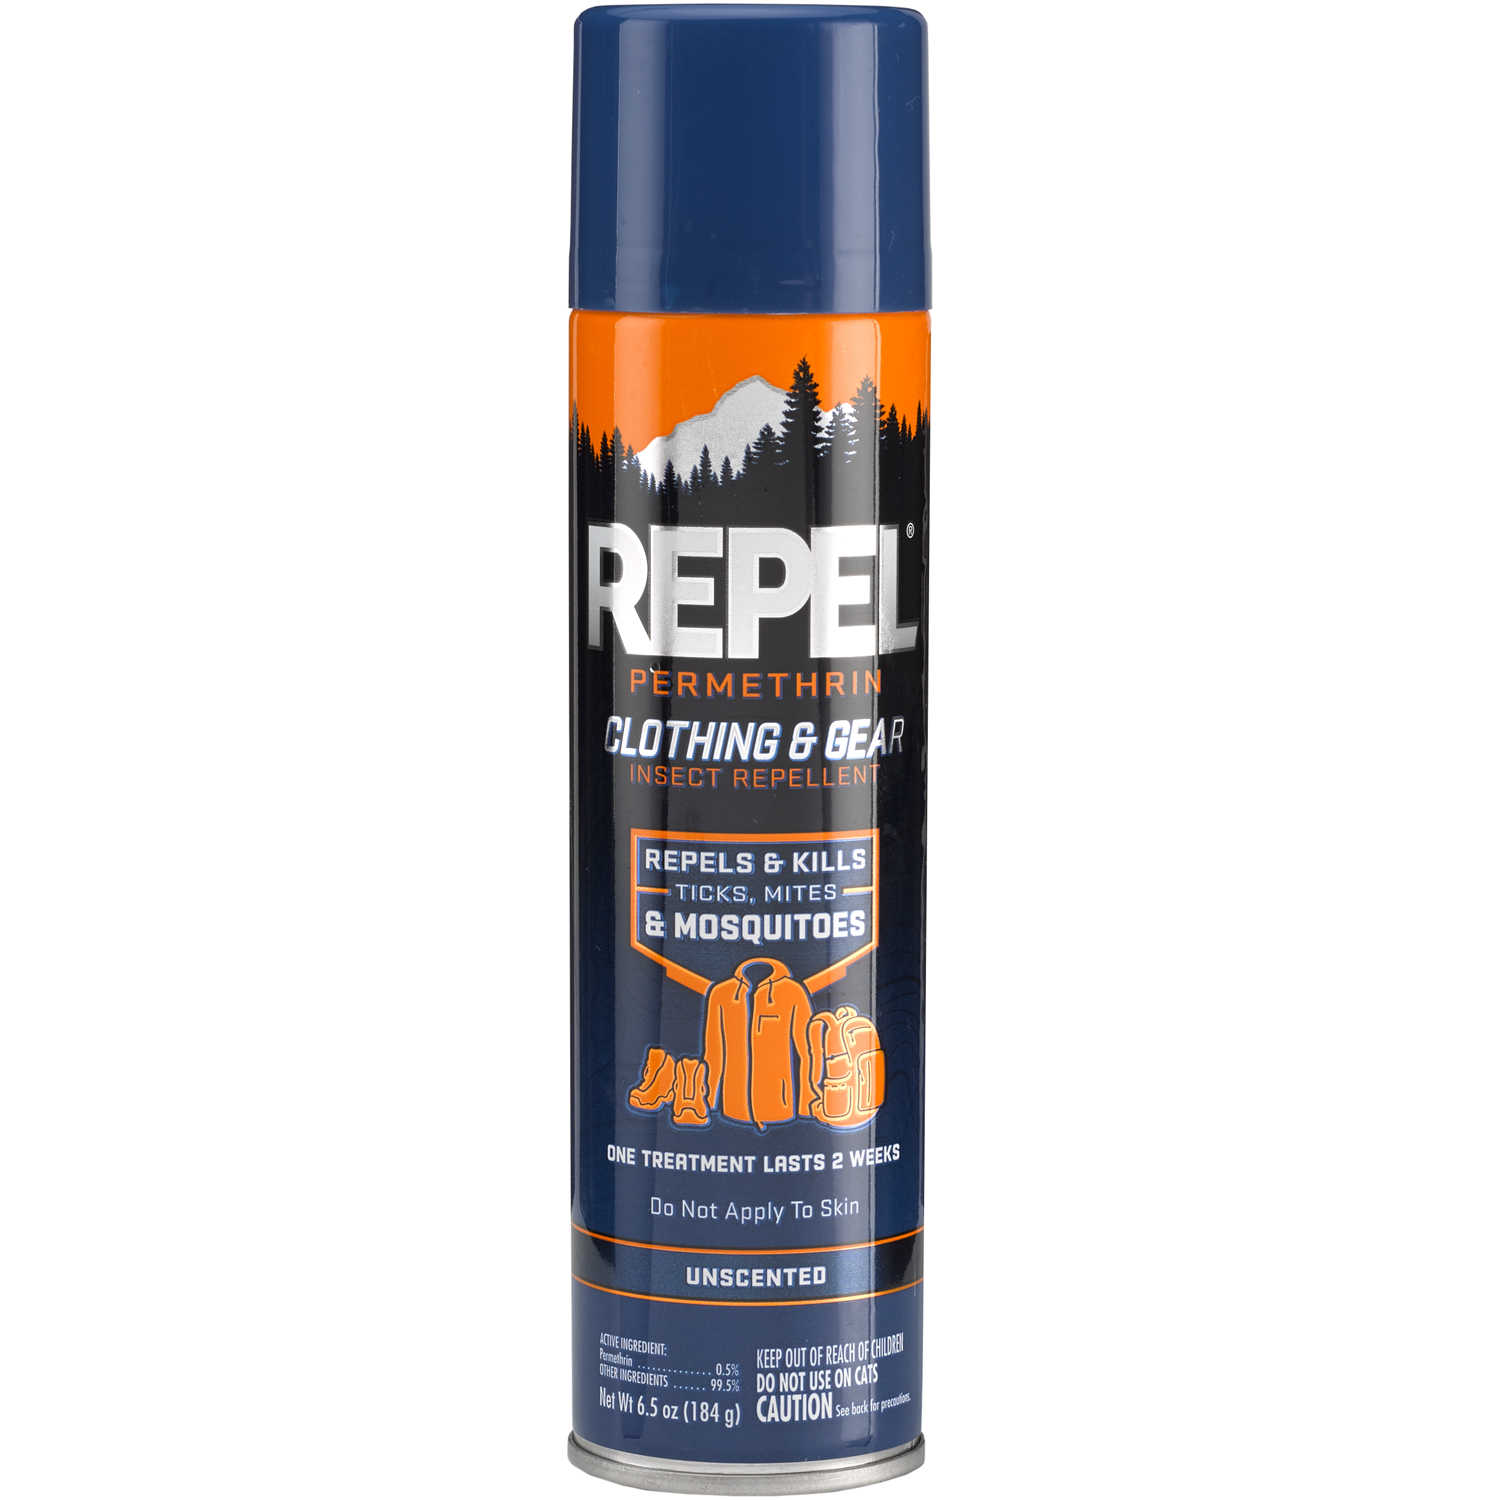 Repel Permethrin Clothing And Gear Insec Forestry Suppliers Inc